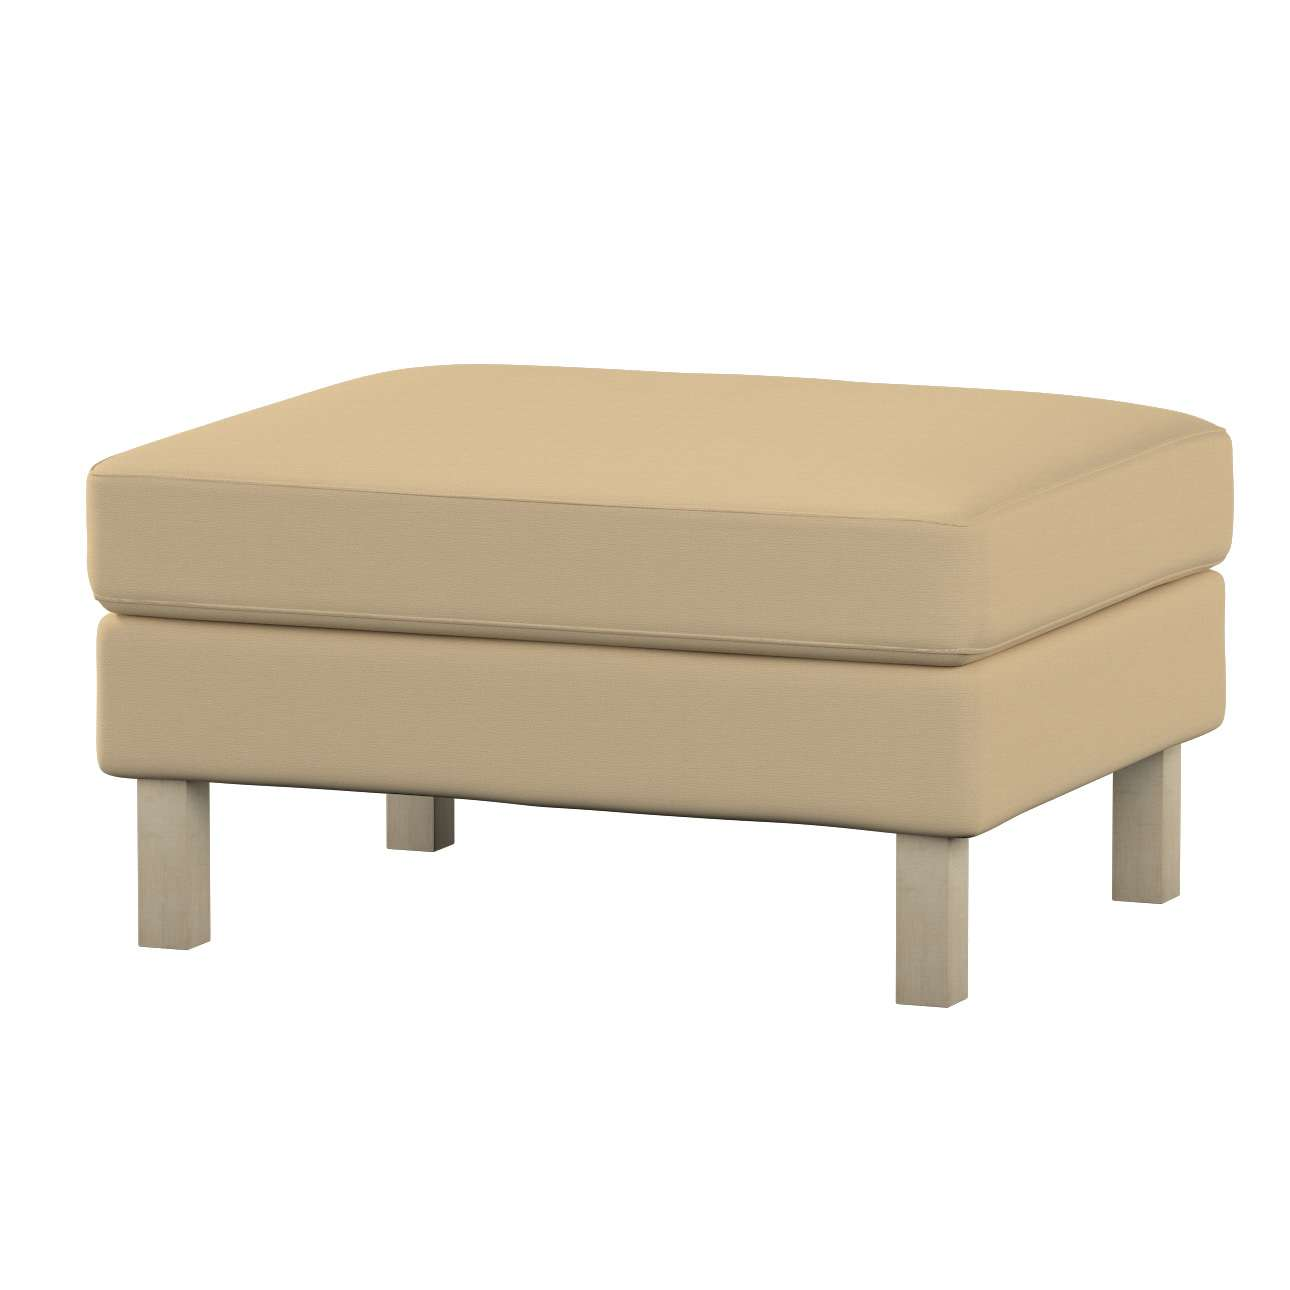 Karlstad footstool cover Karlstad footstool cover in collection Cotton Panama, fabric: 702-01